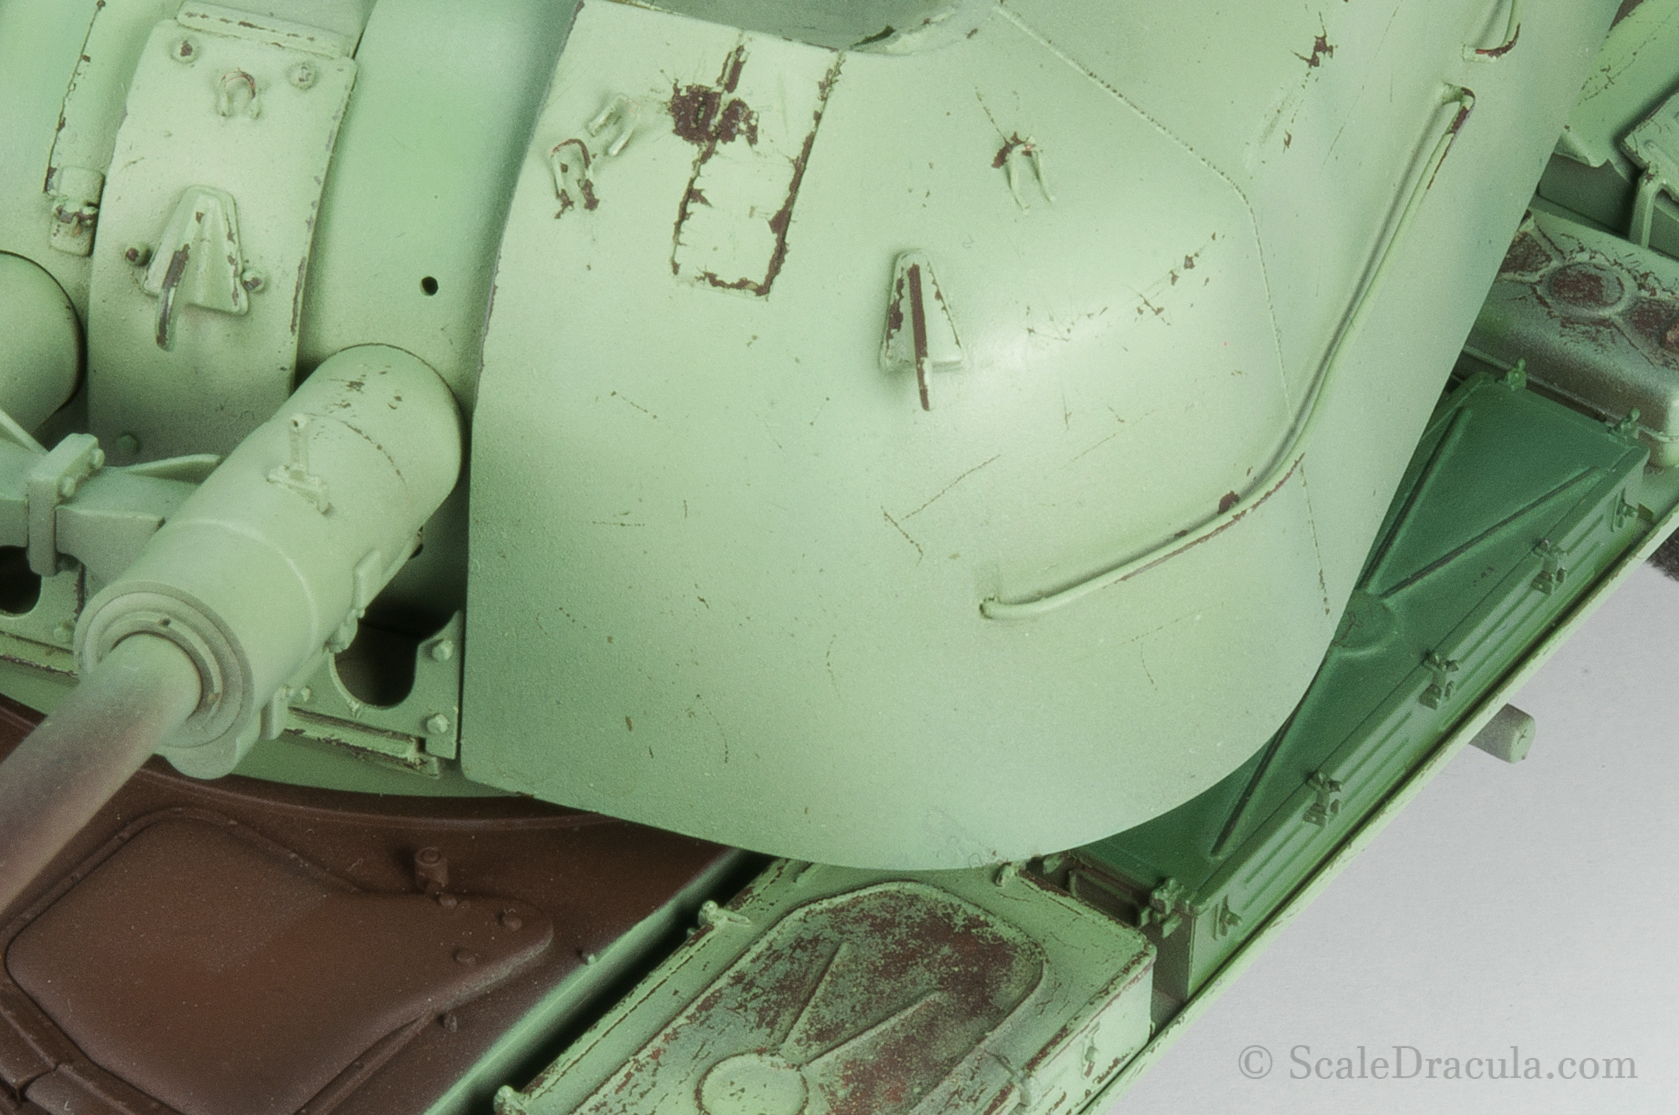 The model during the chipping stage, ZSU-57 by TAKOM